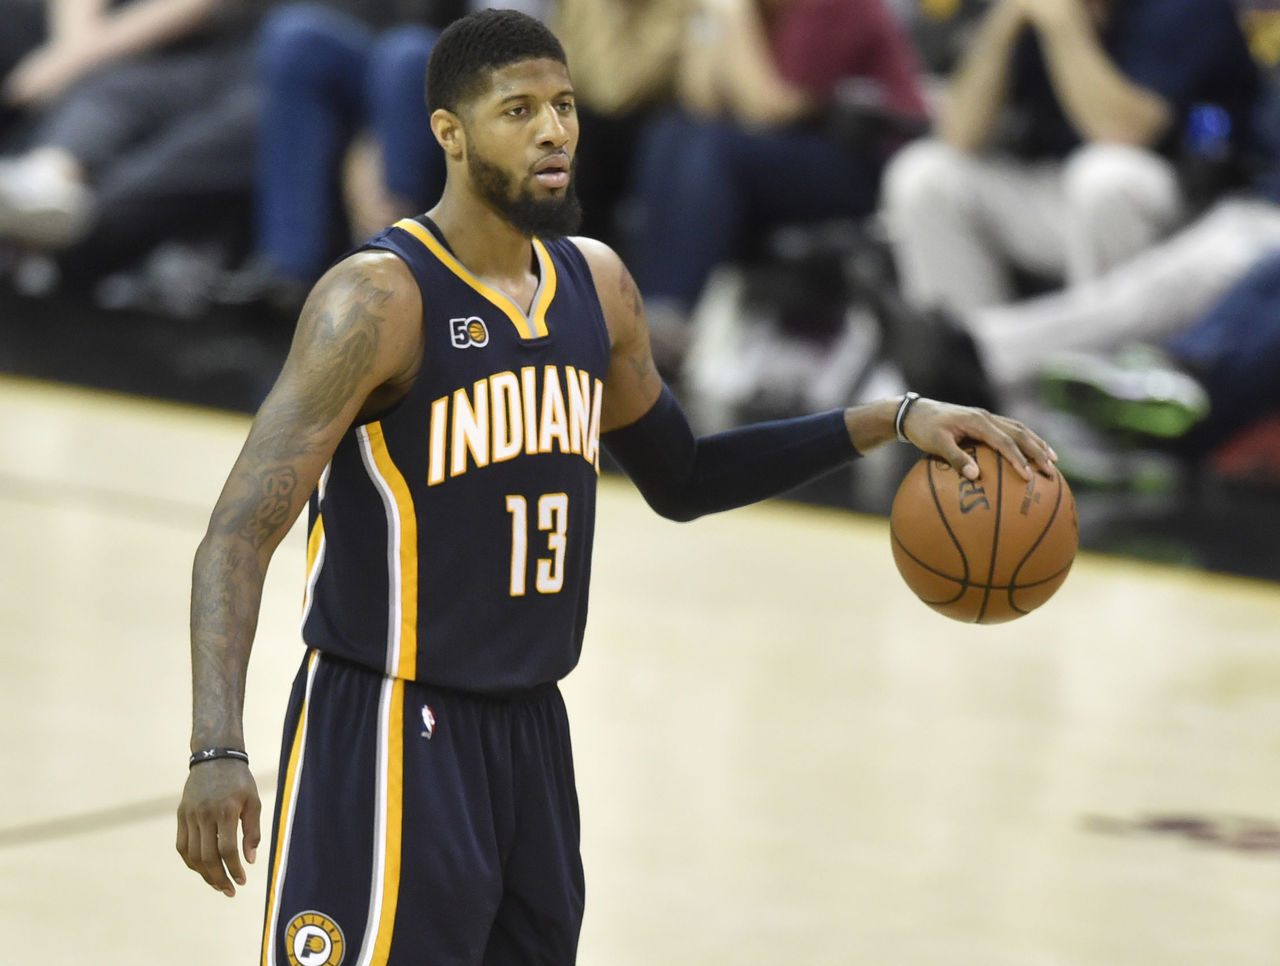 Cropped 2017 04 03t021716z 564133885 nocid rtrmadp 3 nba indiana pacers at cleveland cavaliers